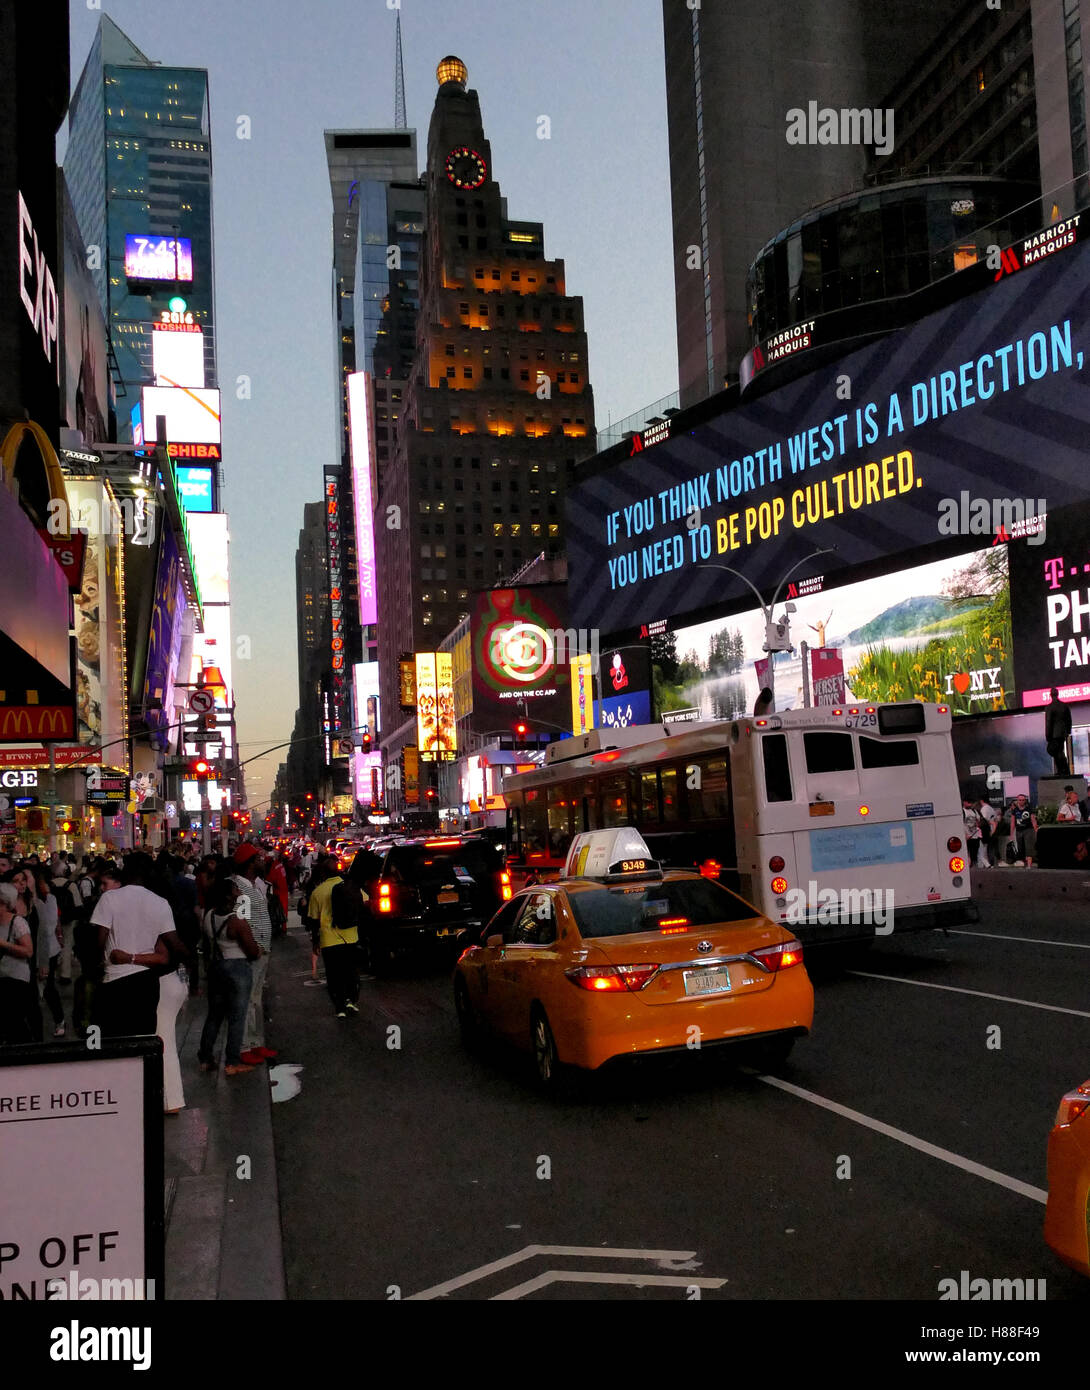 NEW YORK, UNITED STATES. AUGUST 24TH 2016. Tourists in Times Square at evening hours. Stock Photo